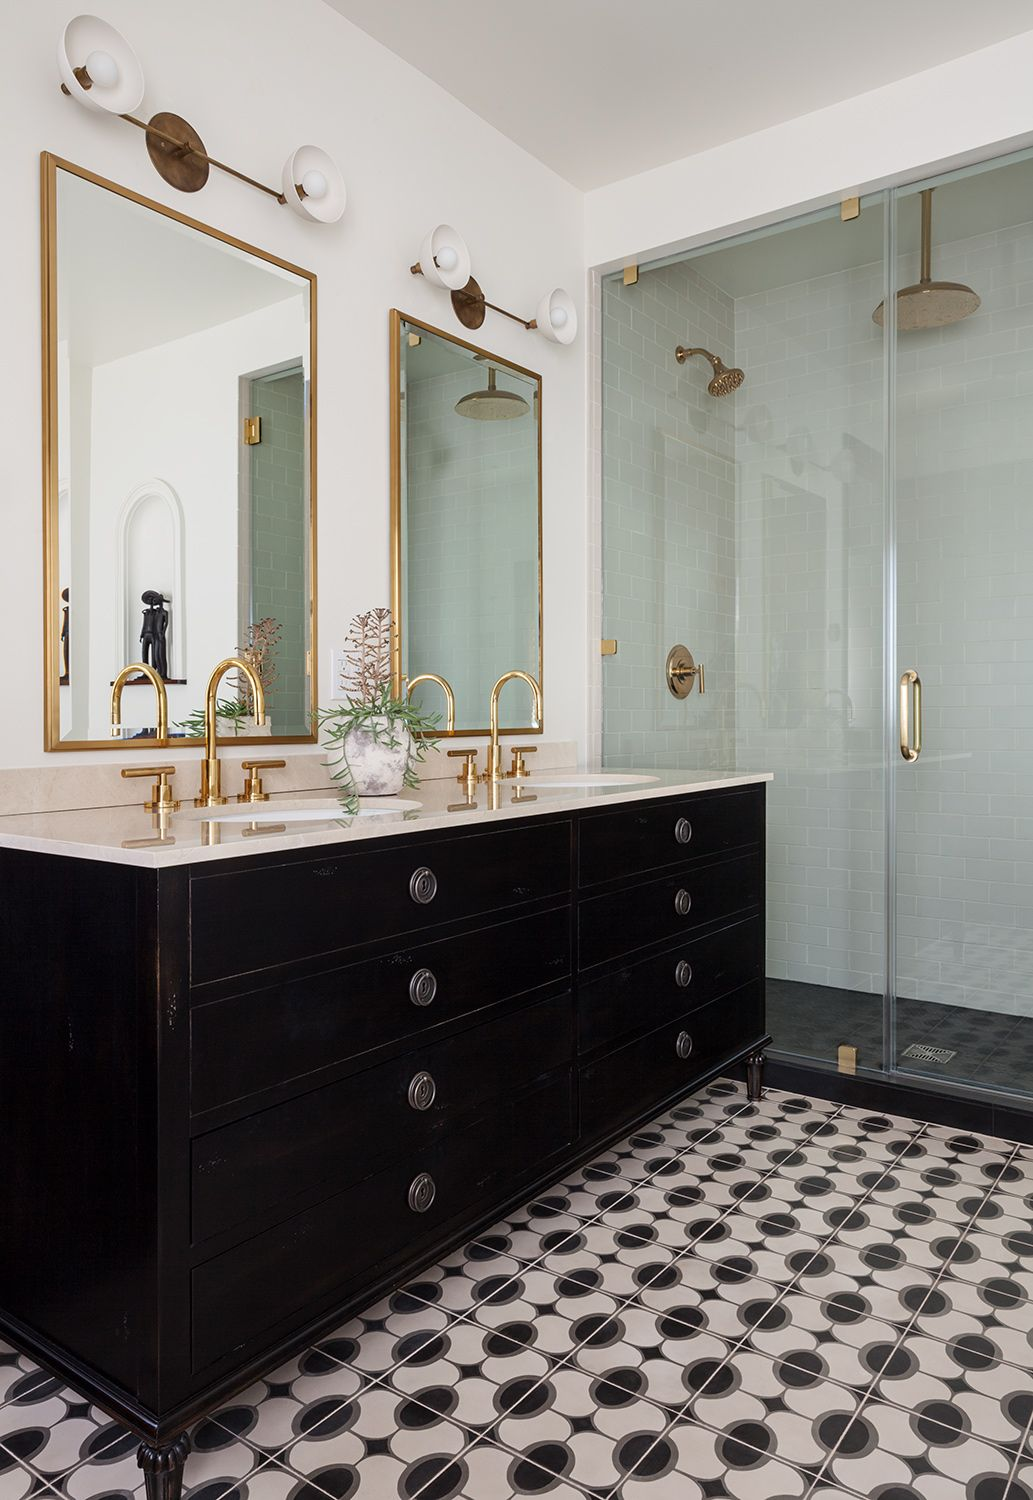 Check Out How To Diy A Metal Framed Mirror For Your Wall Full Video Tutorial Included Howt Bathroom Mirrors Diy Metal Frame Mirror Bathroom Vanity Des Bathroom Mirrors Diy Mirror [ 1102 x 735 Pixel ]